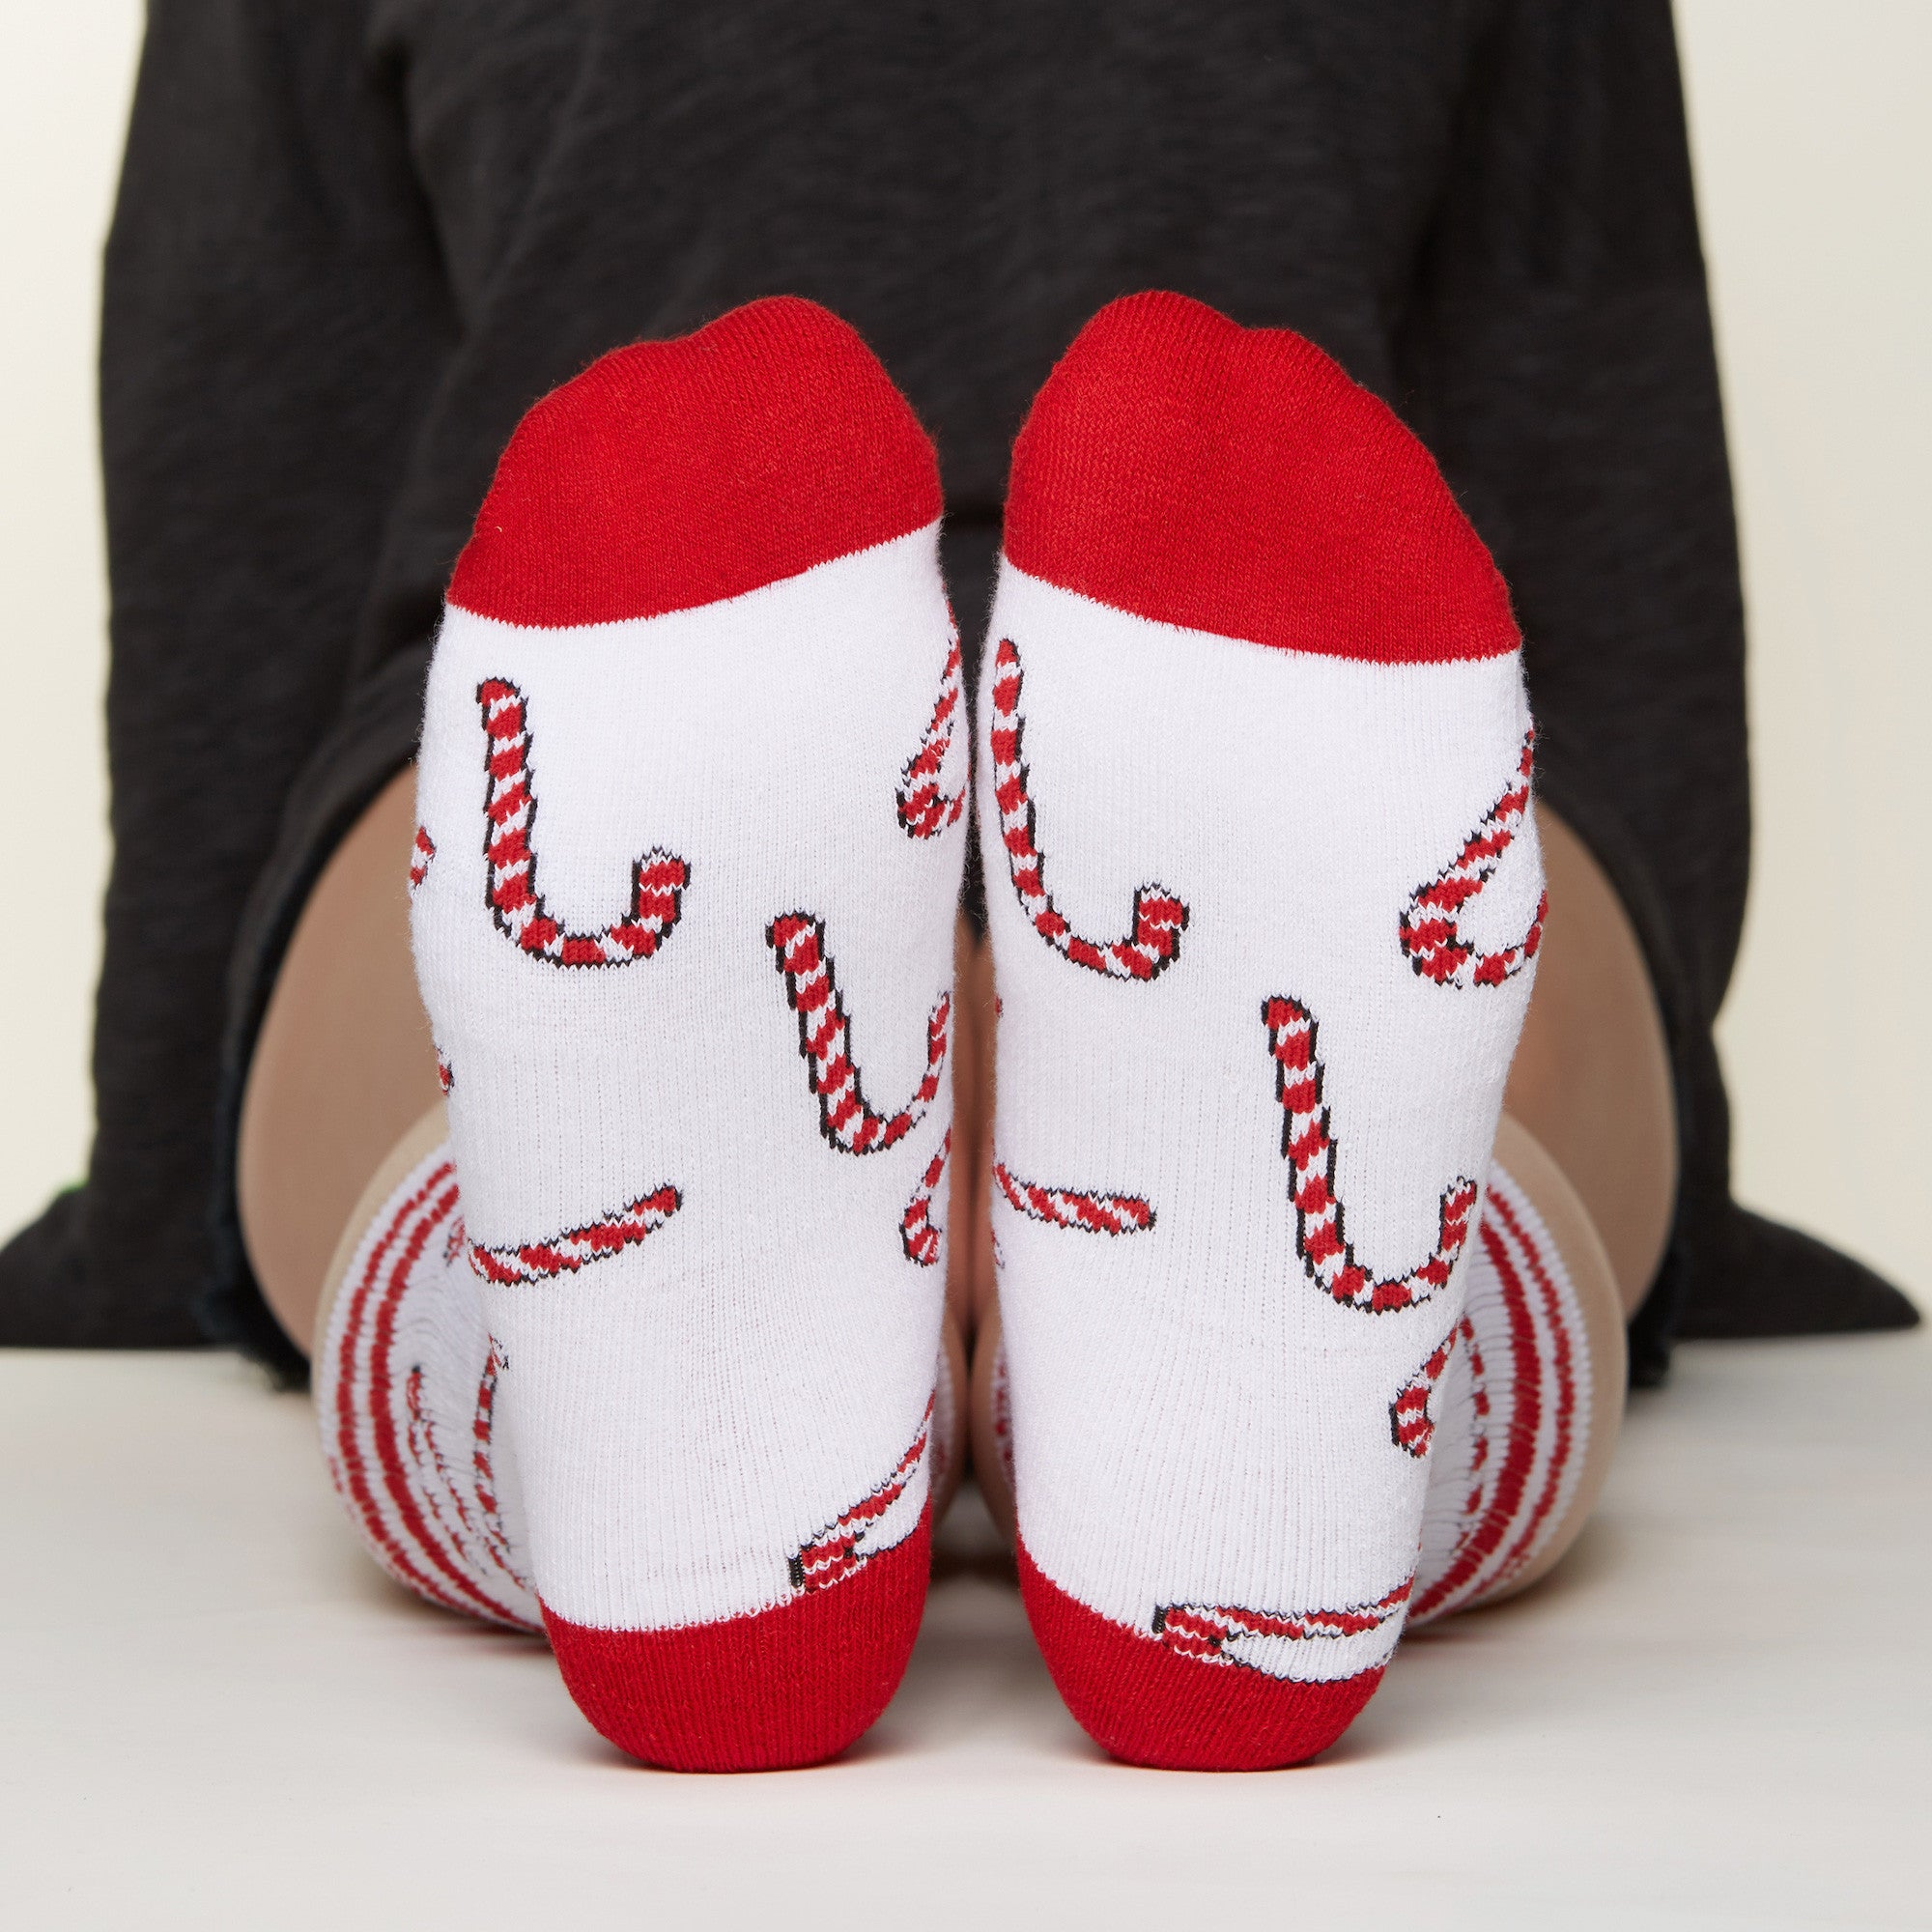 Candy Cane socks bottom front view